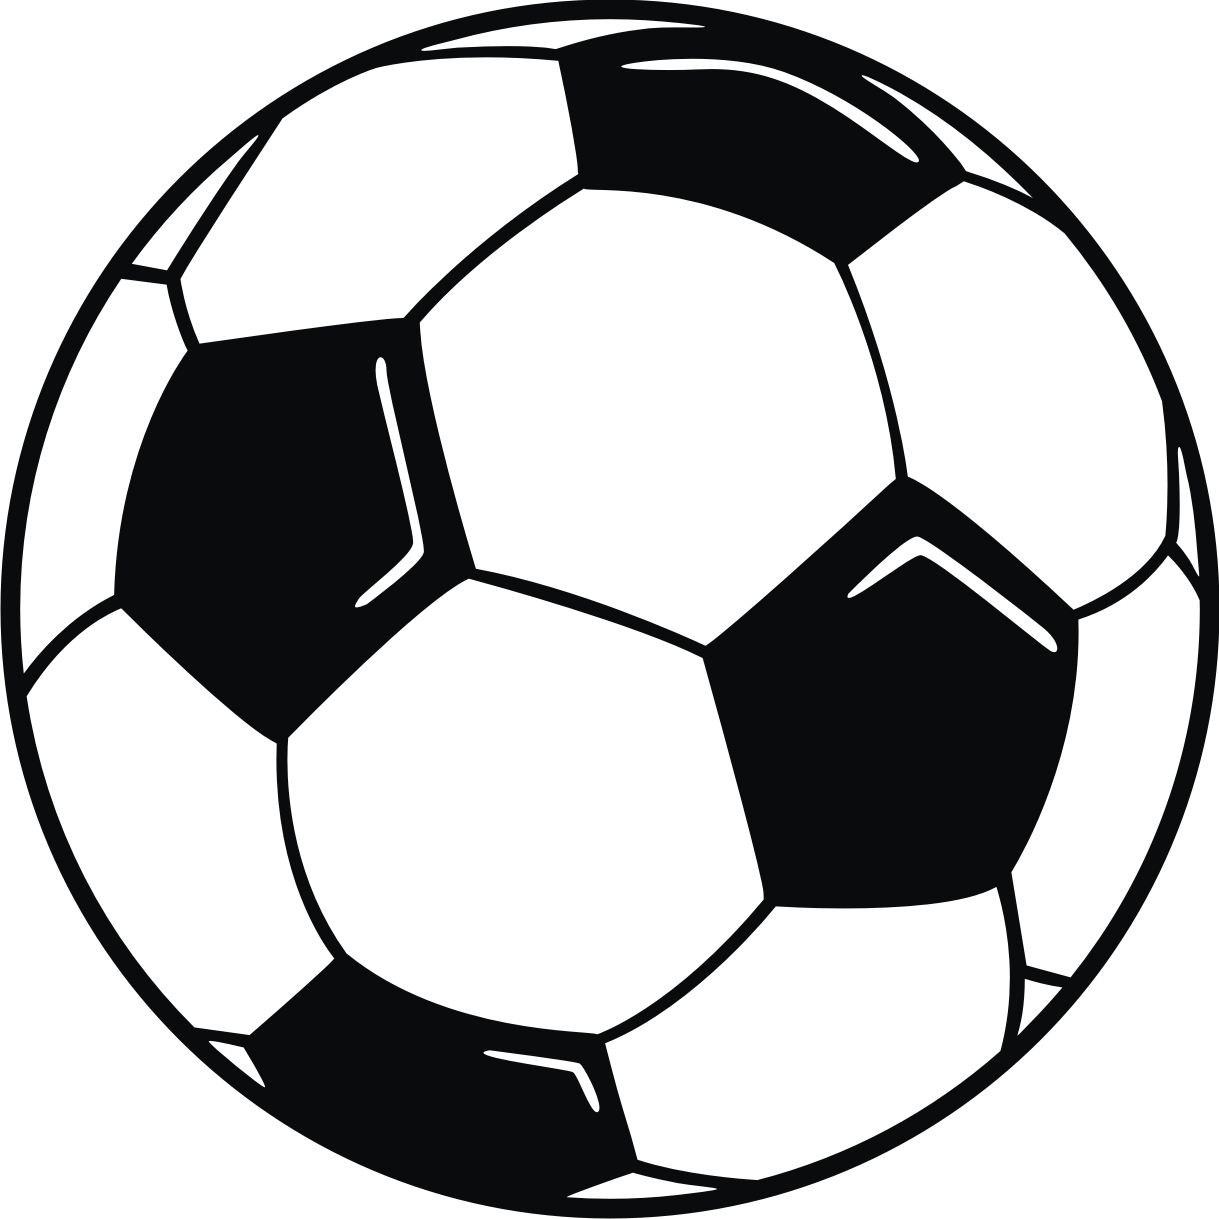 Football Ball Image  1202.2 Kb